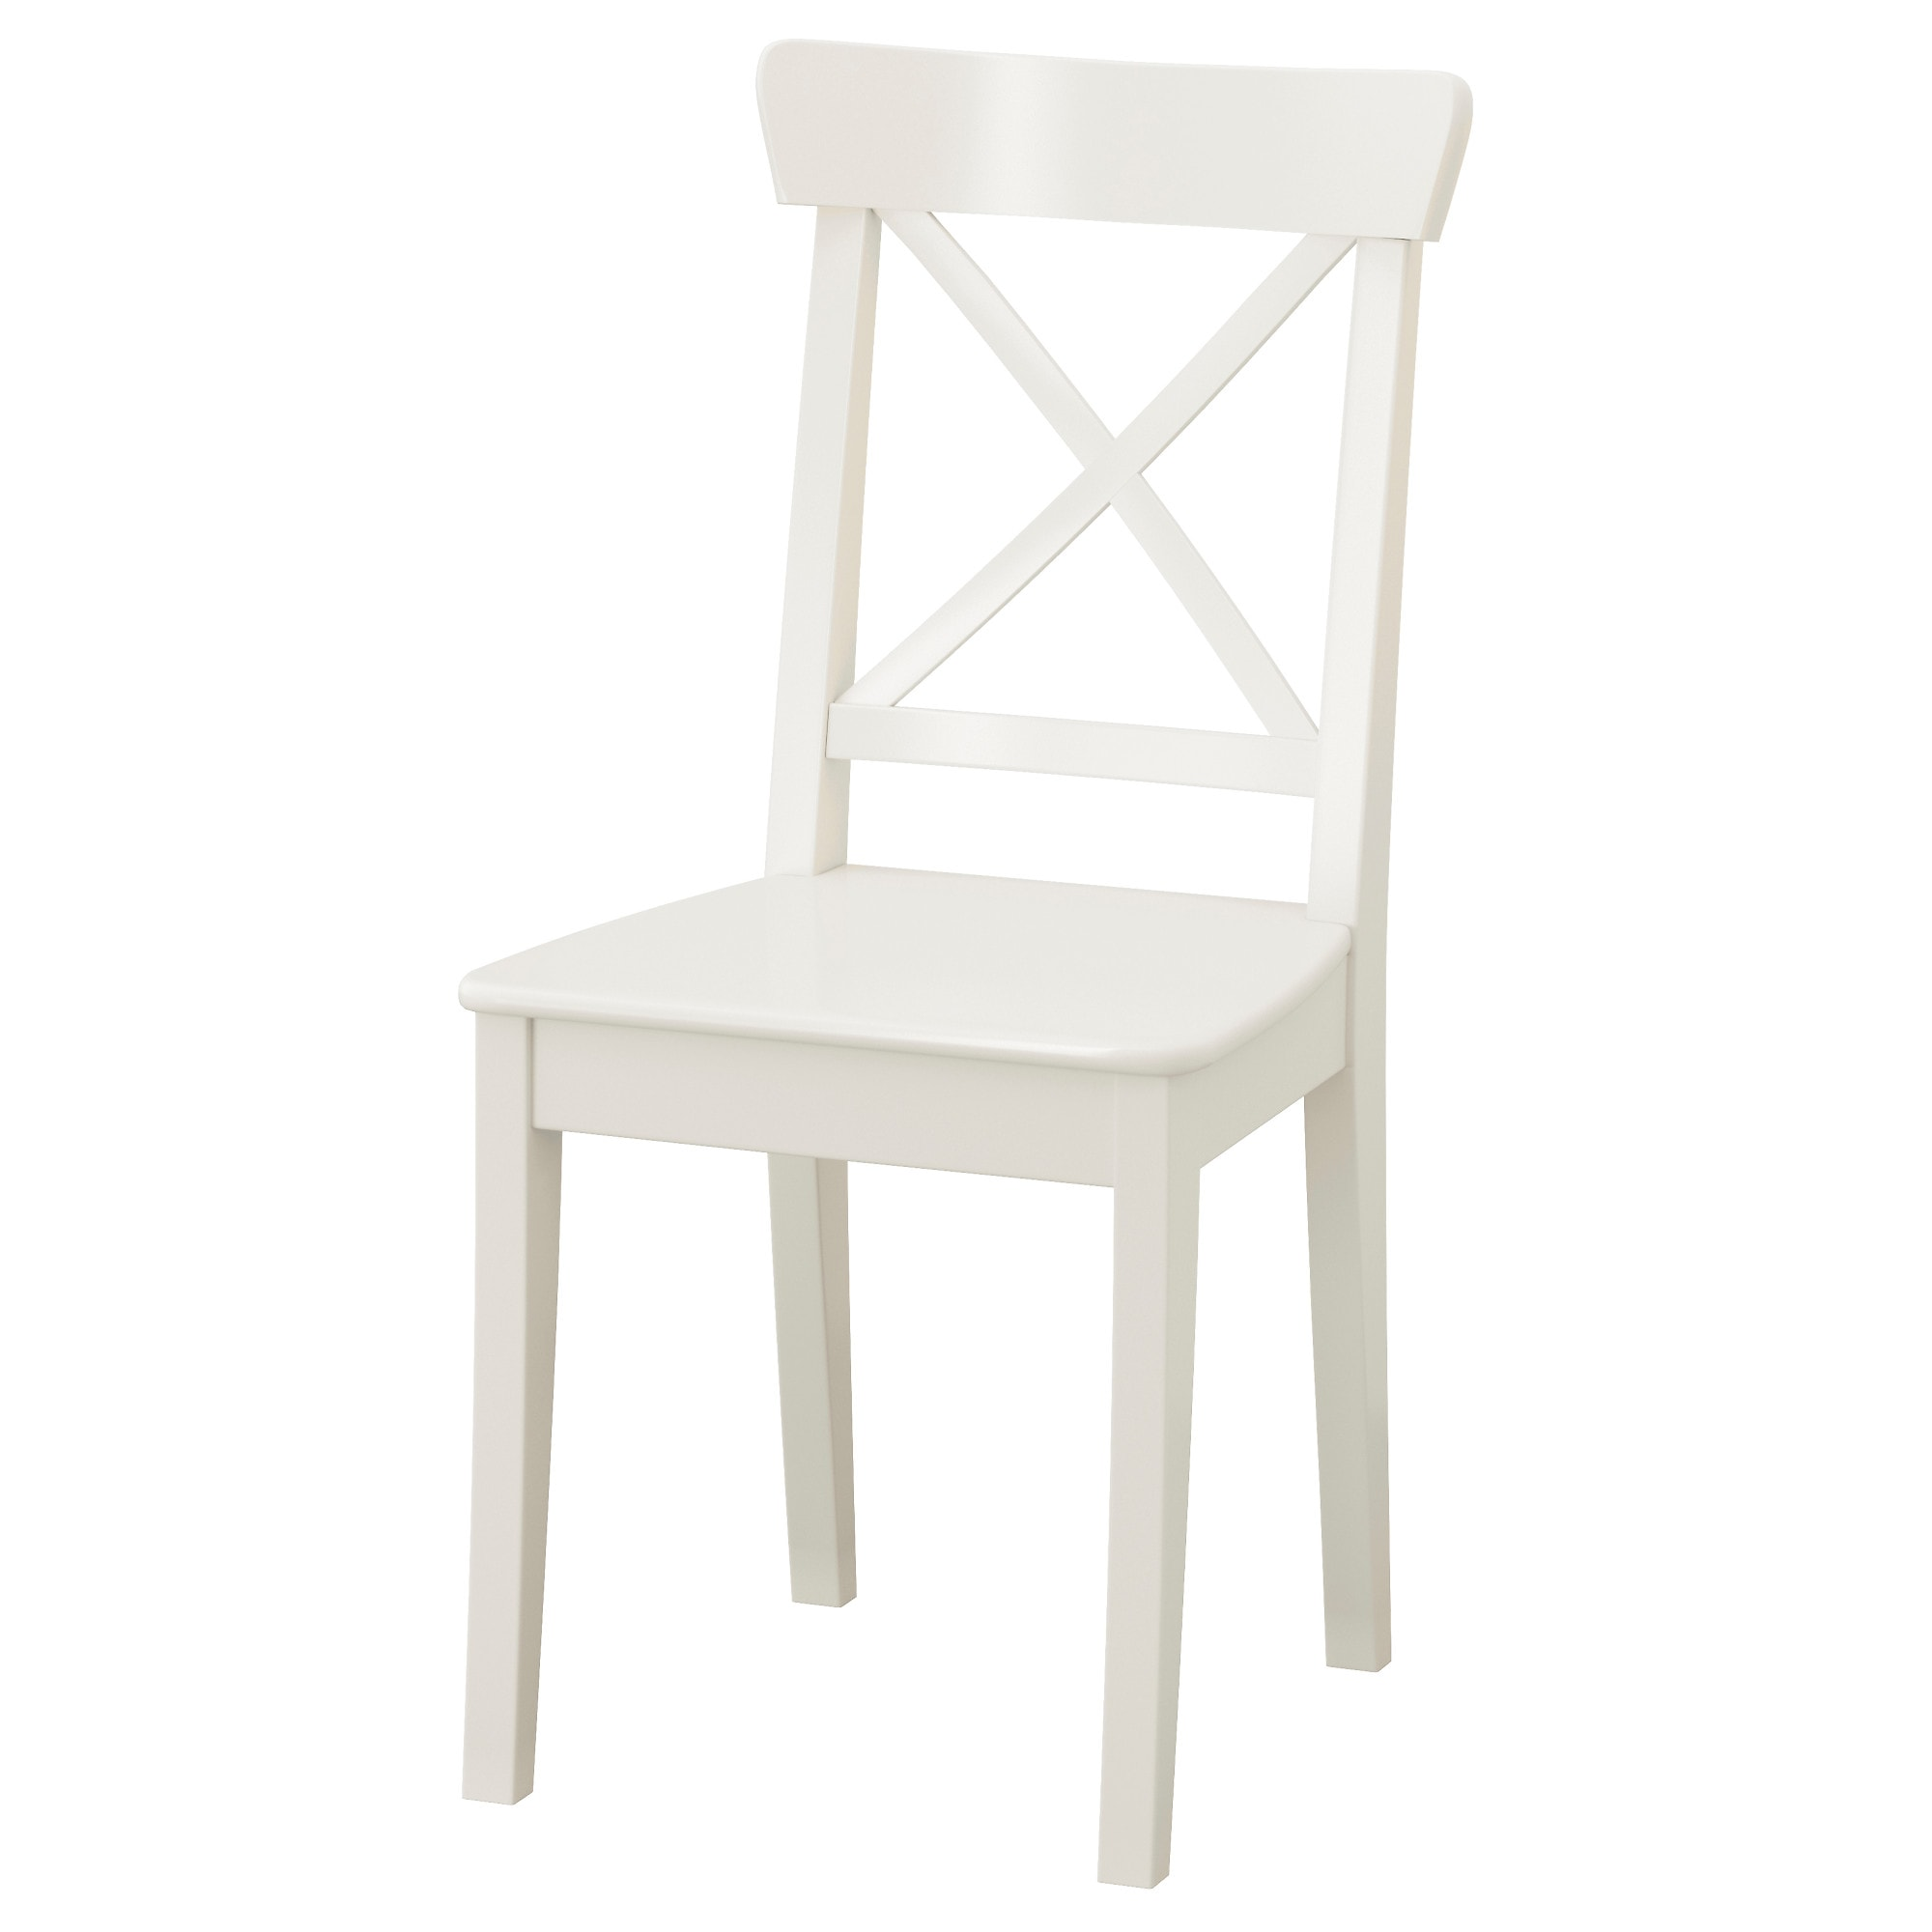 INGOLF Chair White Tested For 243 Lb Width 16 7 8